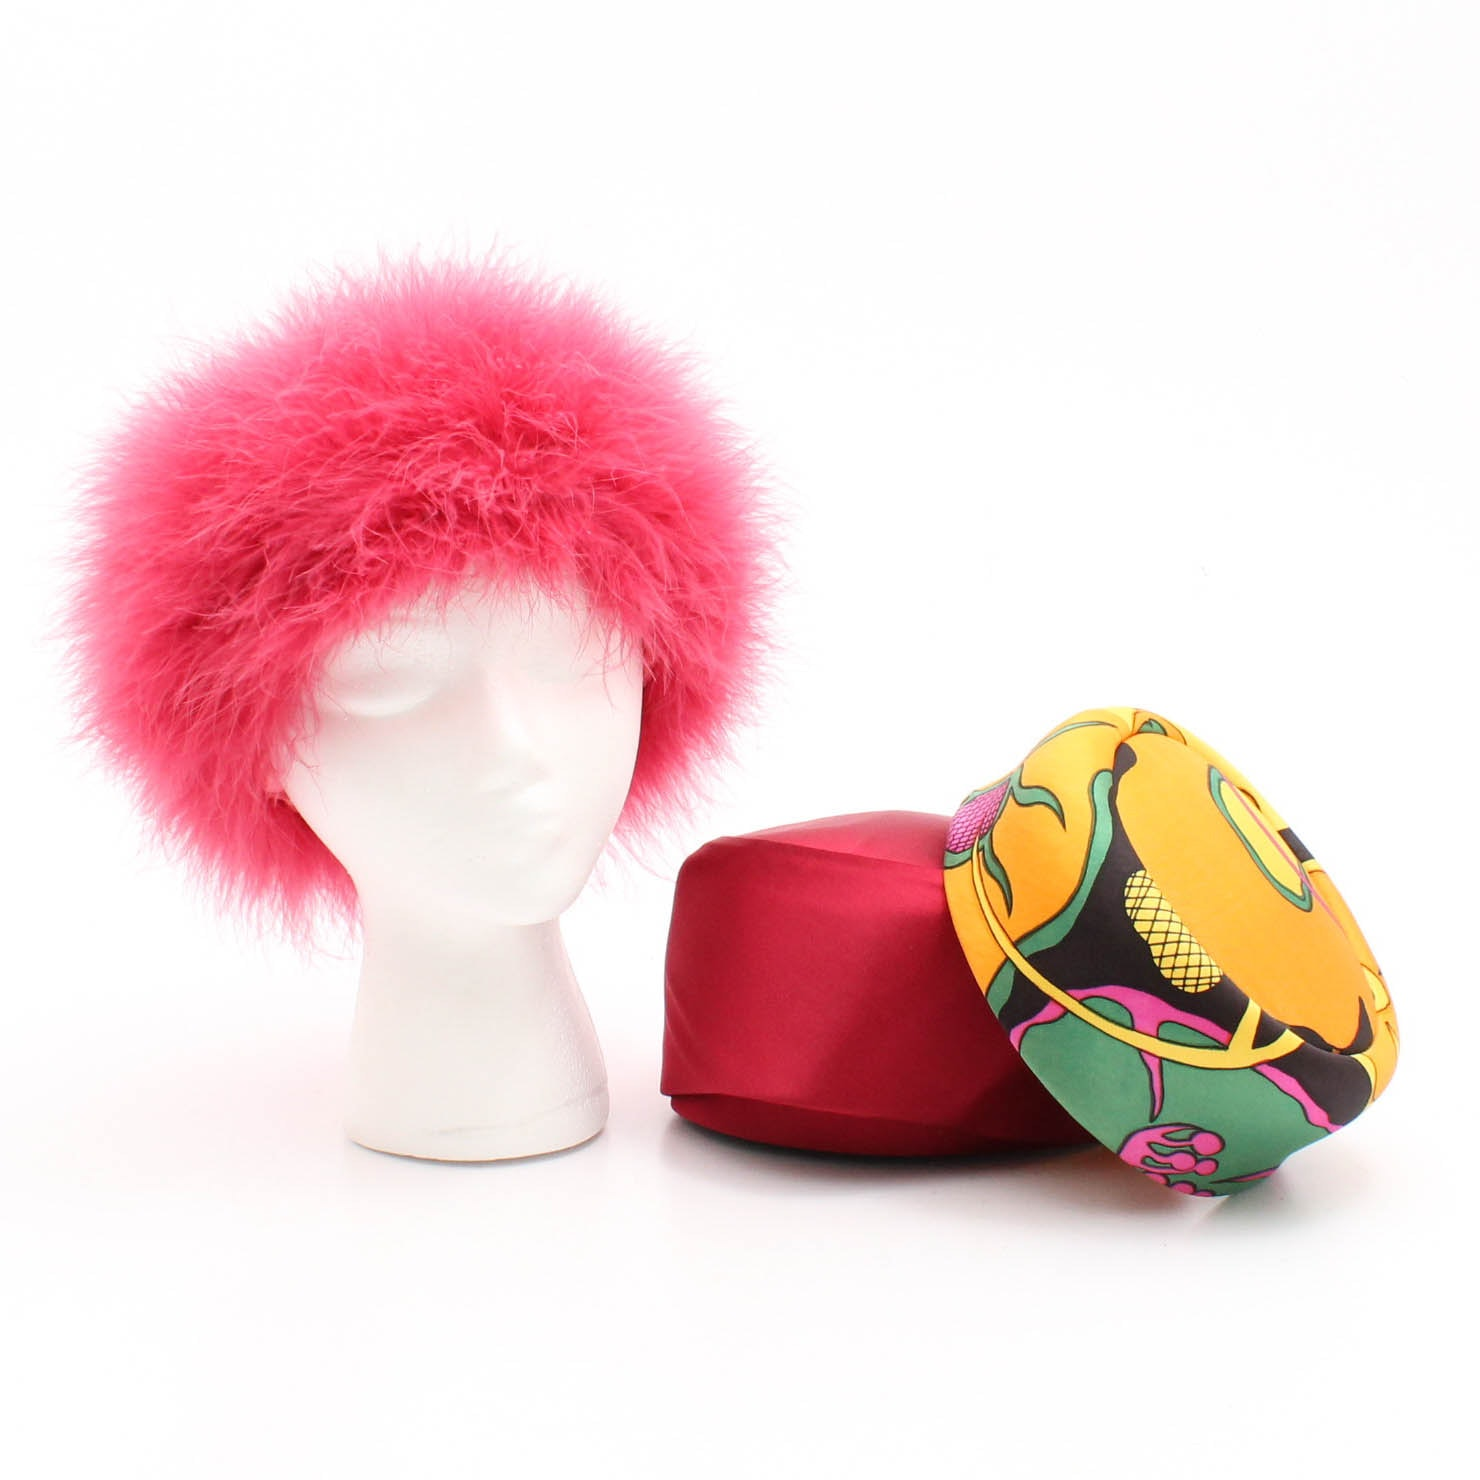 Vintage Mr. John Classic Mod Hat, Mr. John Red Pillbox Hat and Pink Ostrich Hat